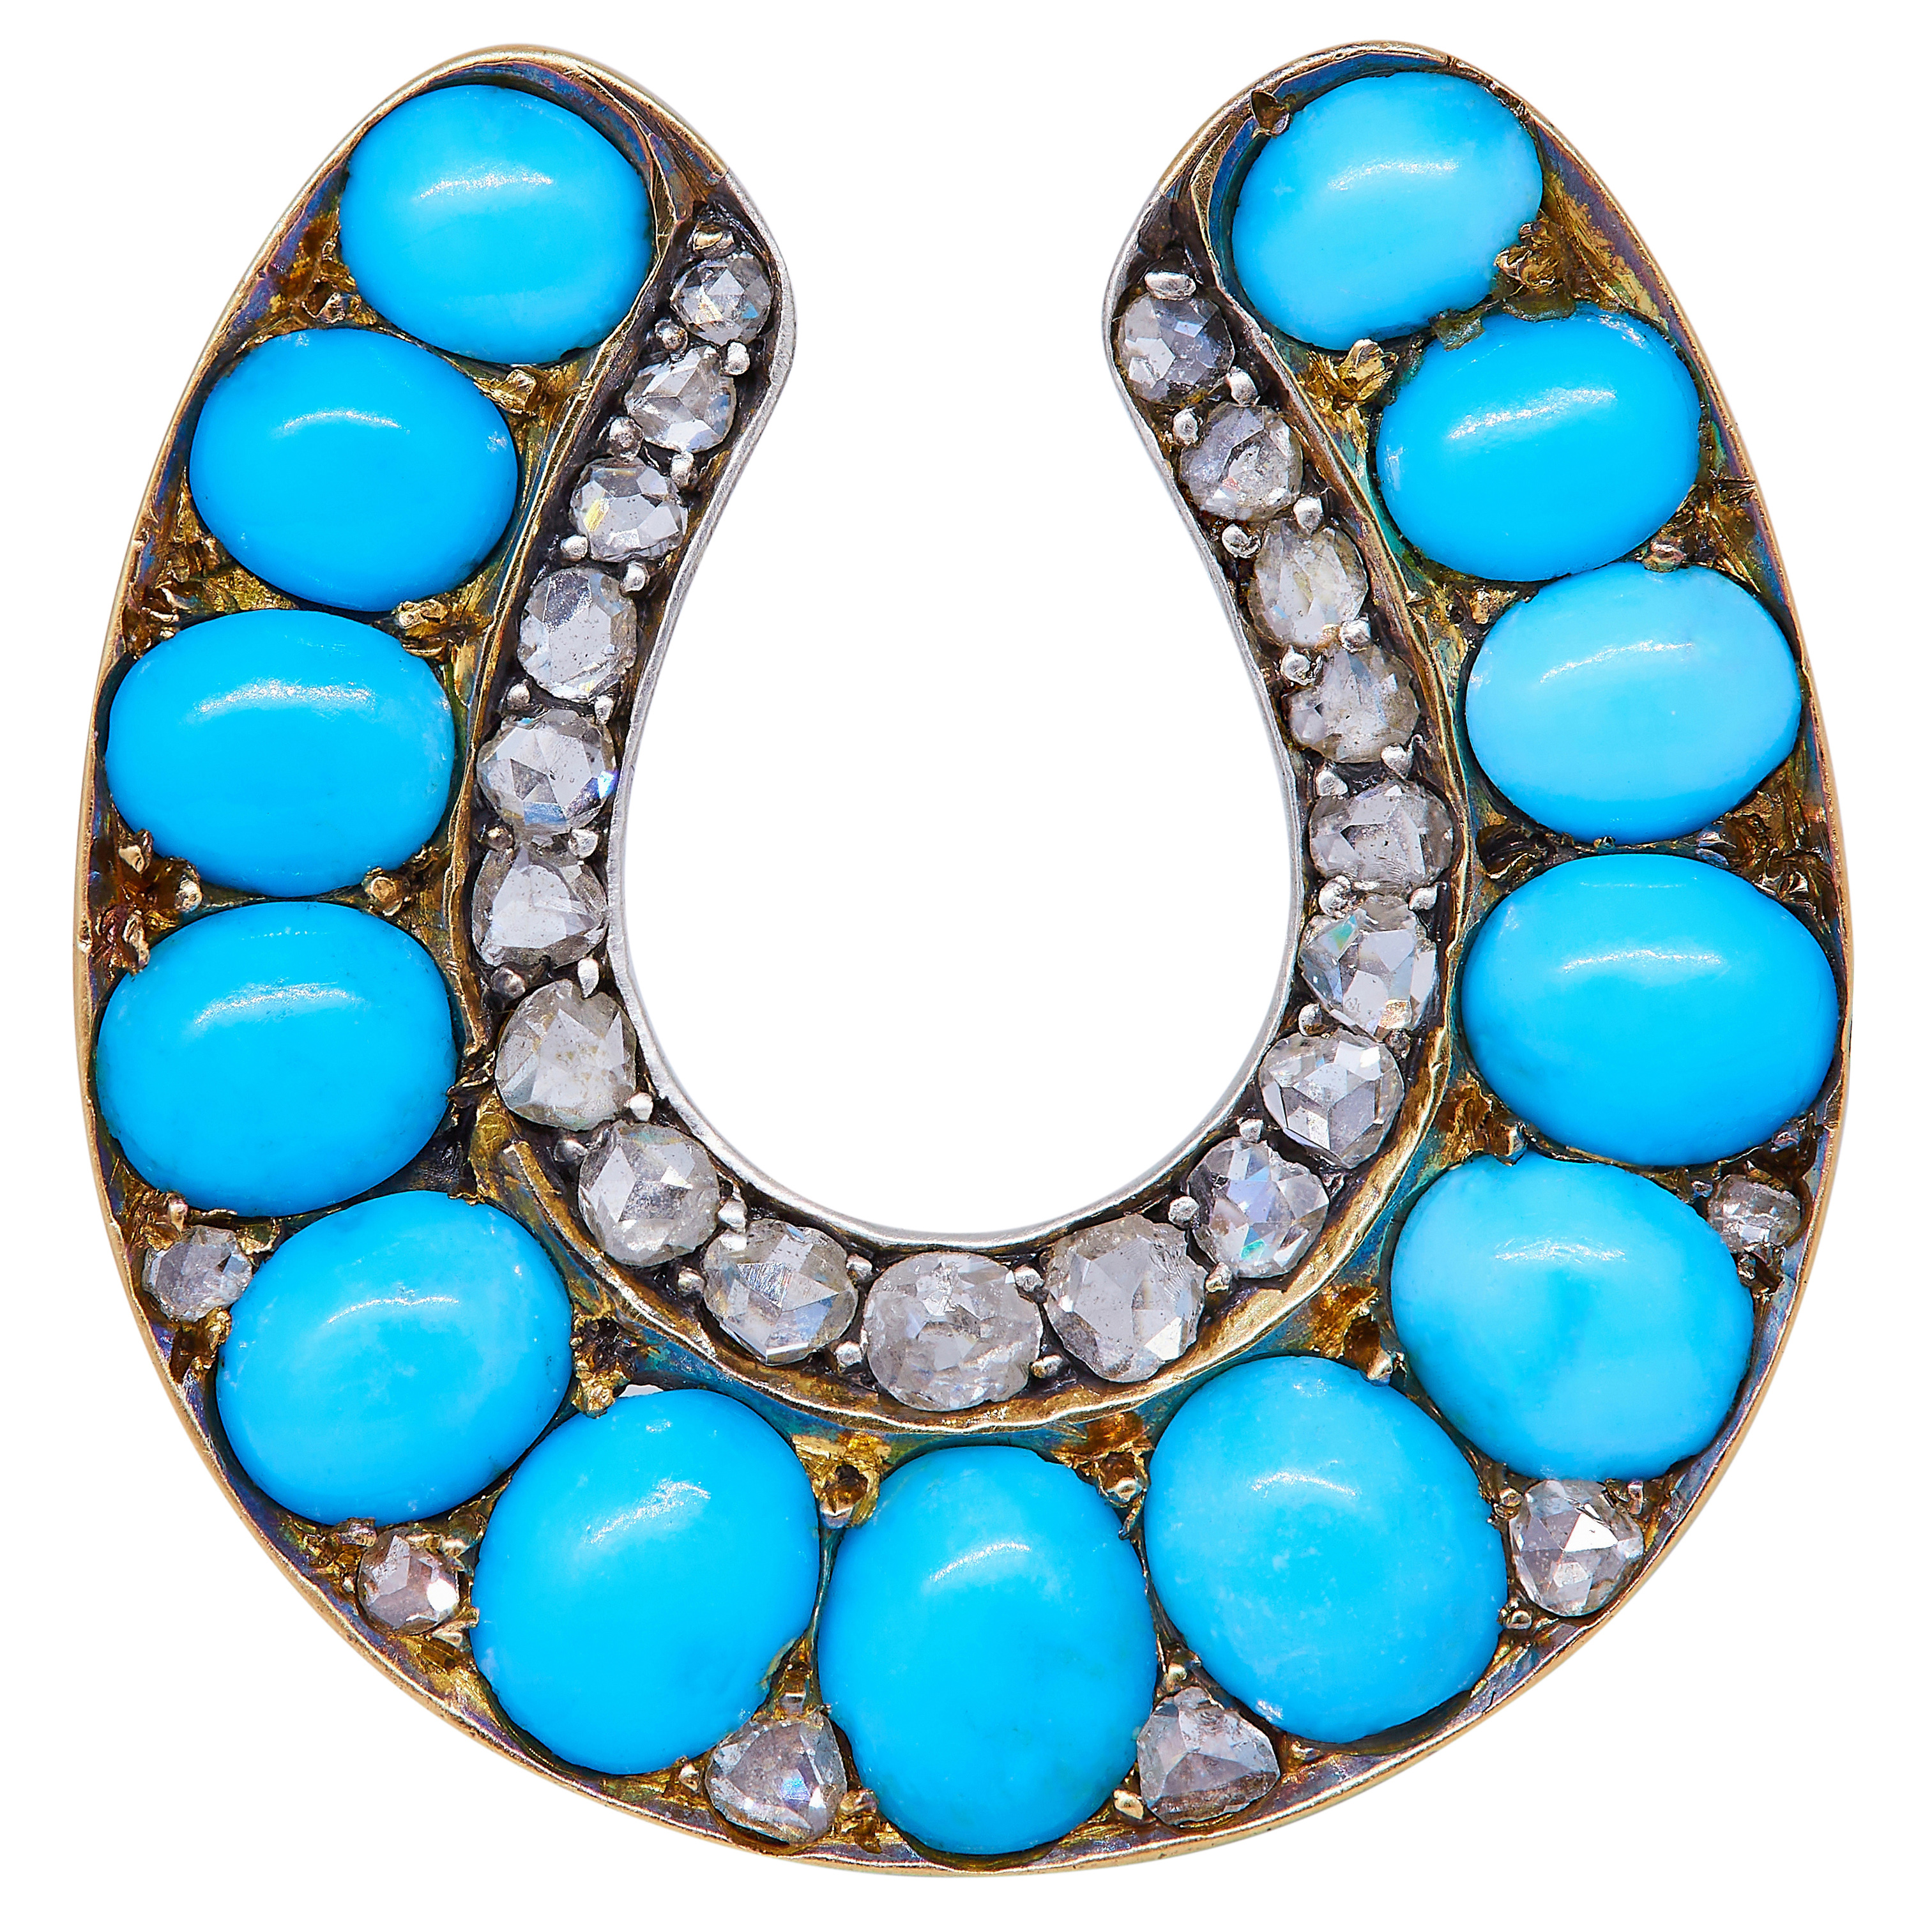 ANTIQUE VICTORIAN DIAMOND AND TURQUOISE HORSESHOE BROOCH